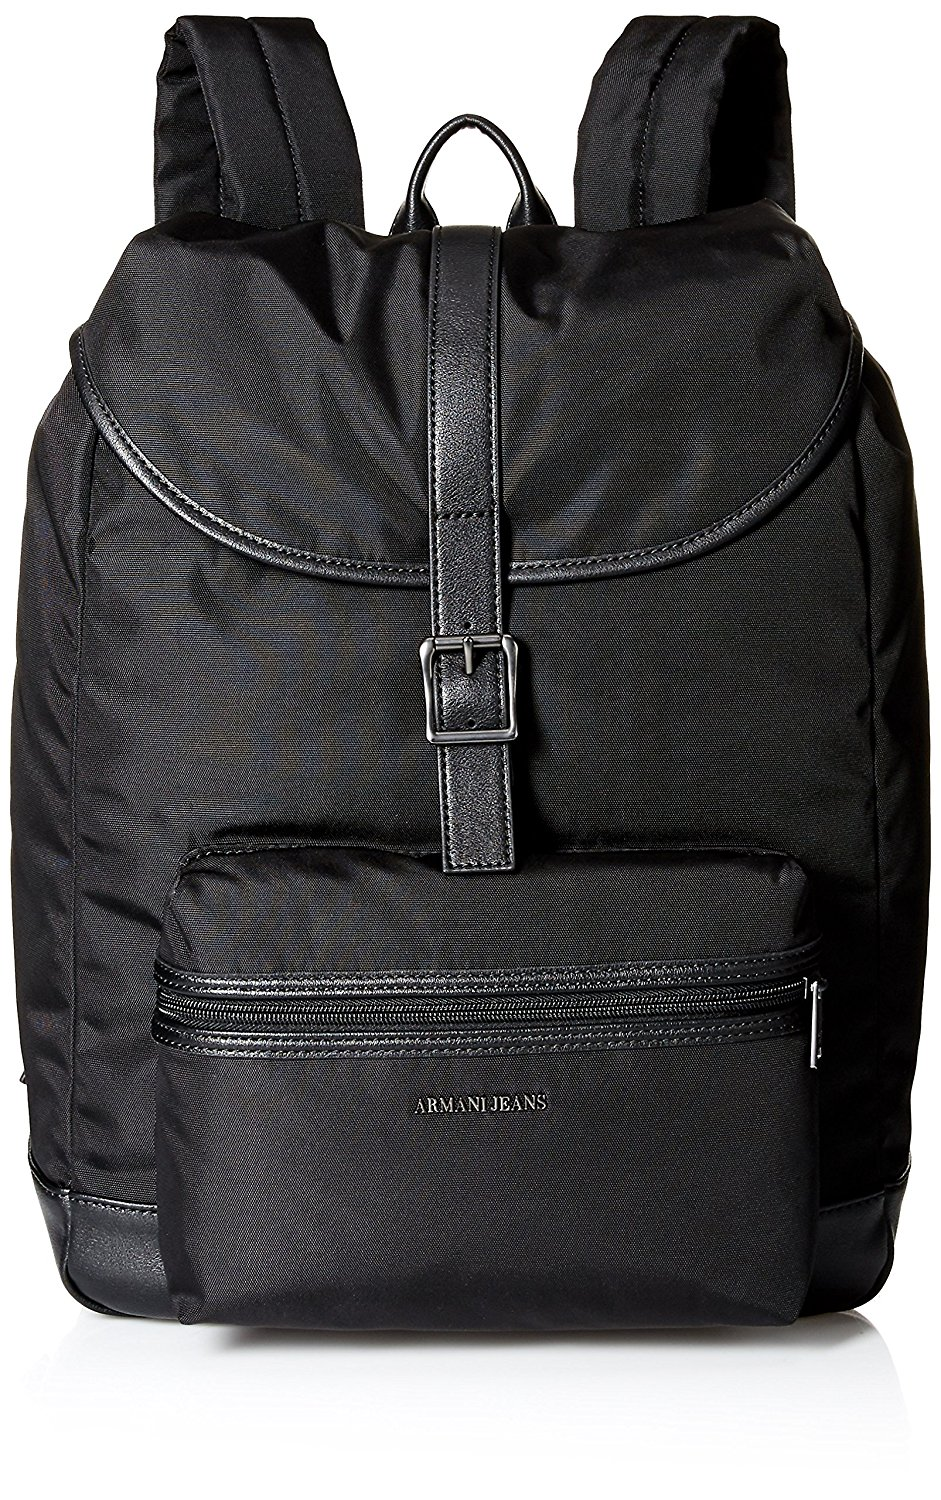 a495df1d14a Cheap Jeans Backpack, find Jeans Backpack deals on line at Alibaba.com